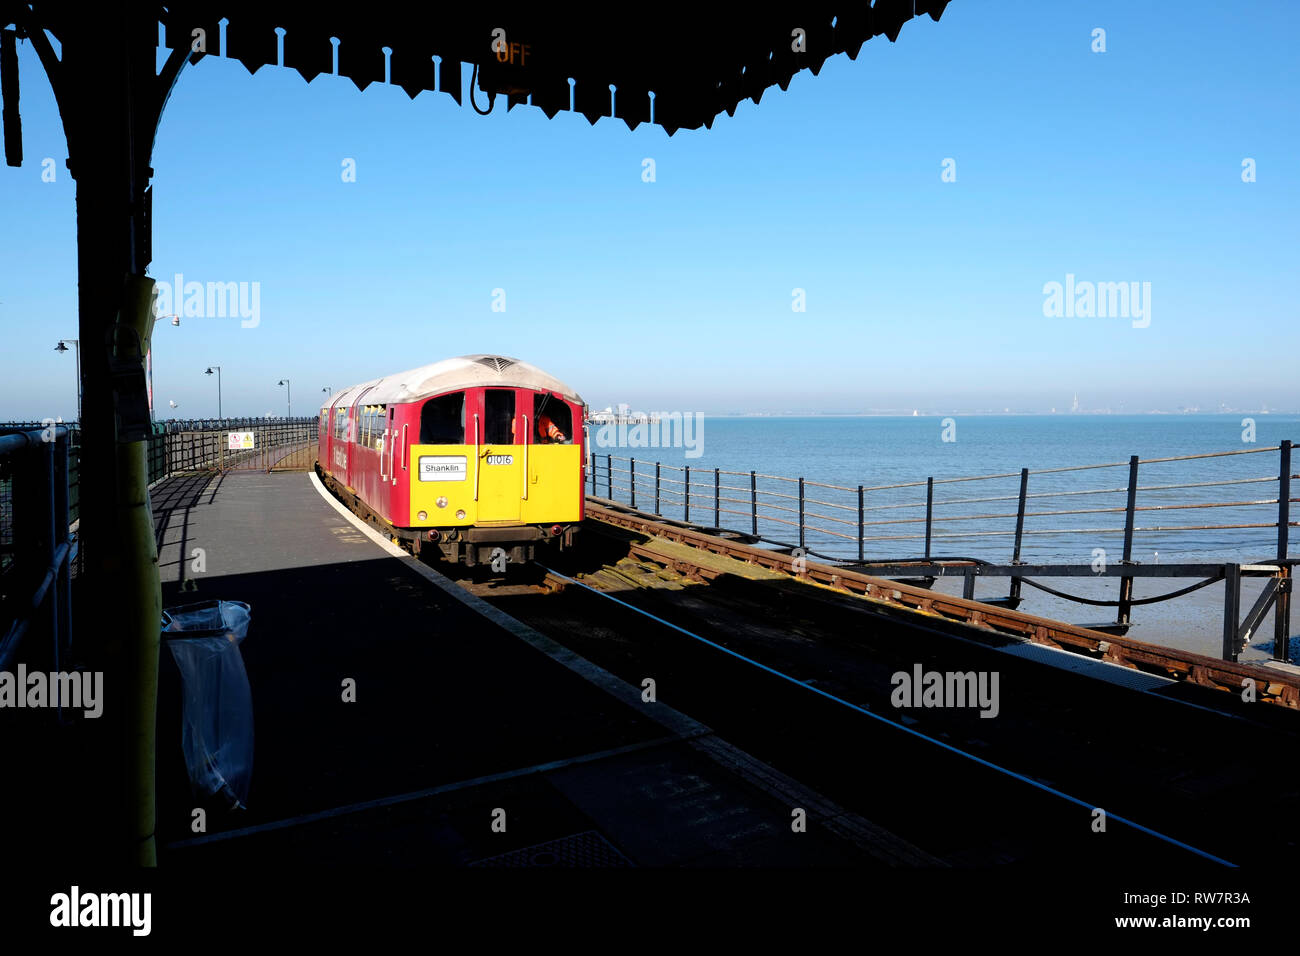 An Island Line Class 483 Multiple Unit Train arriving at Ryde Esplanade Station from Ryde Pier Head station along Ryde pier, Isle of Wight, UK. - Stock Image